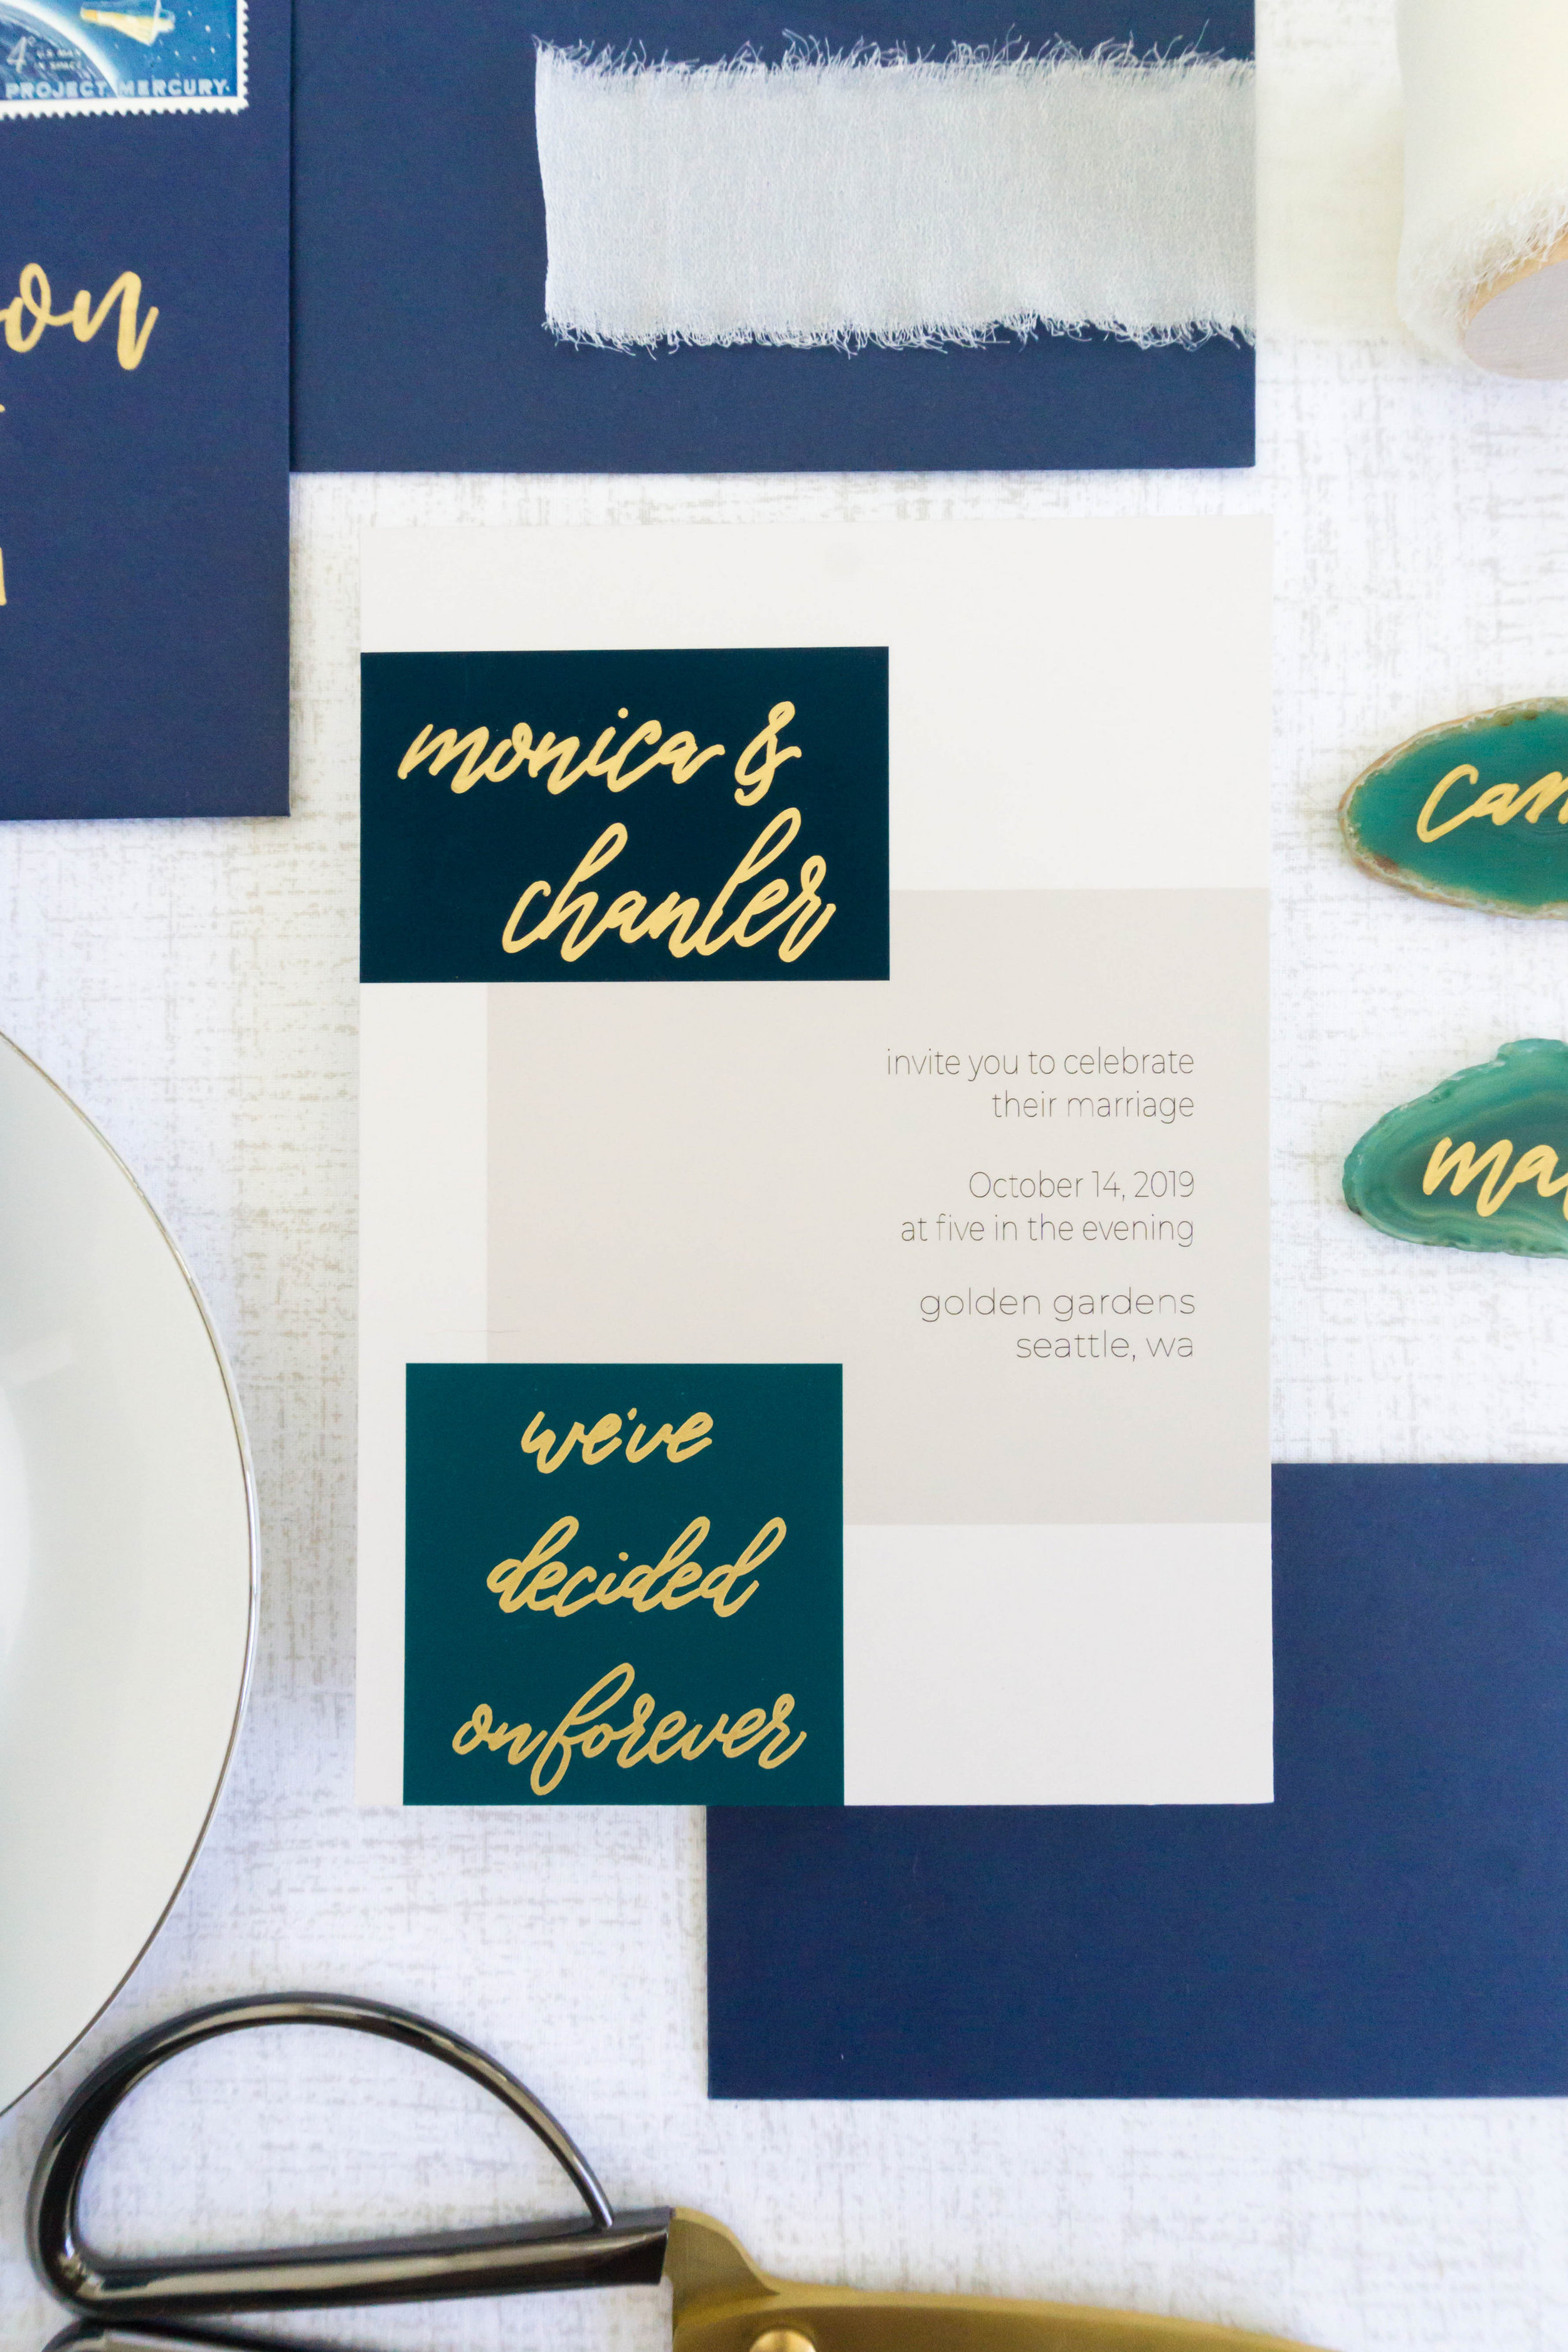 love-fern-design-studio-custom-wedding-invitations-for-the-modern-couple-modern-calligraphy-in-seattle-washington-custom-wedding-stationery-navy-teal-gold-color-block